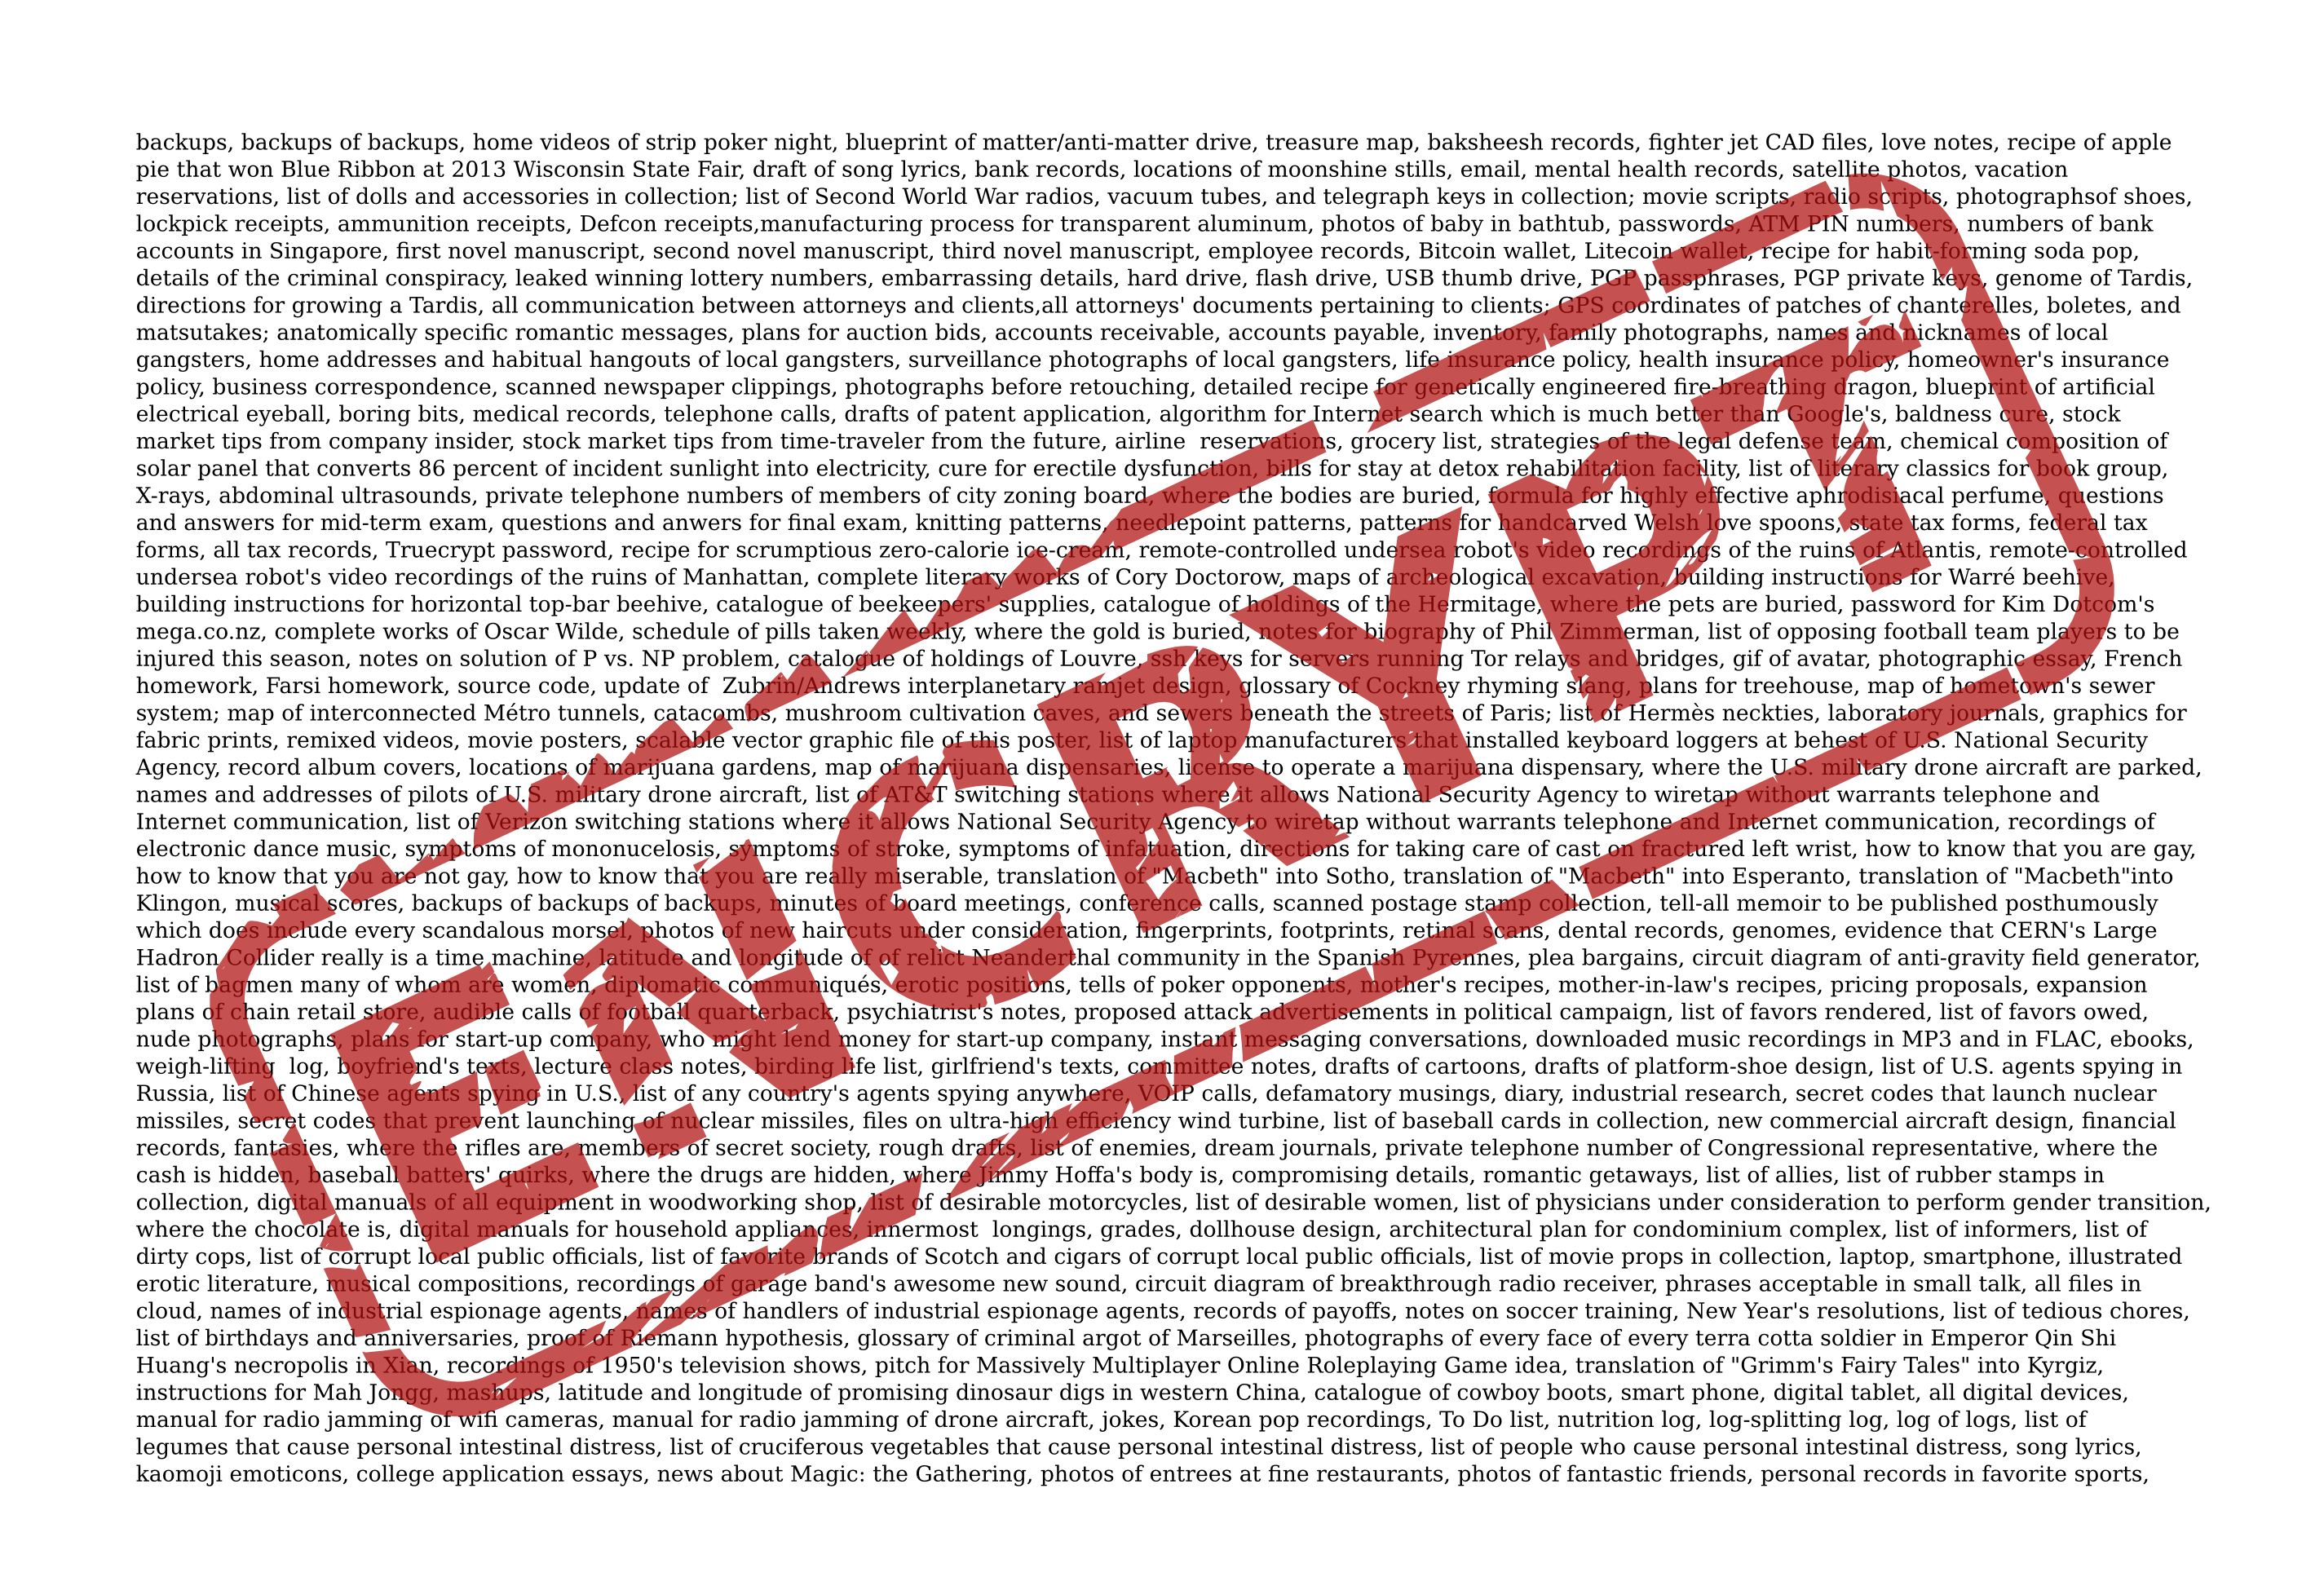 Encrypt Everything! Don't let security be the reason you don